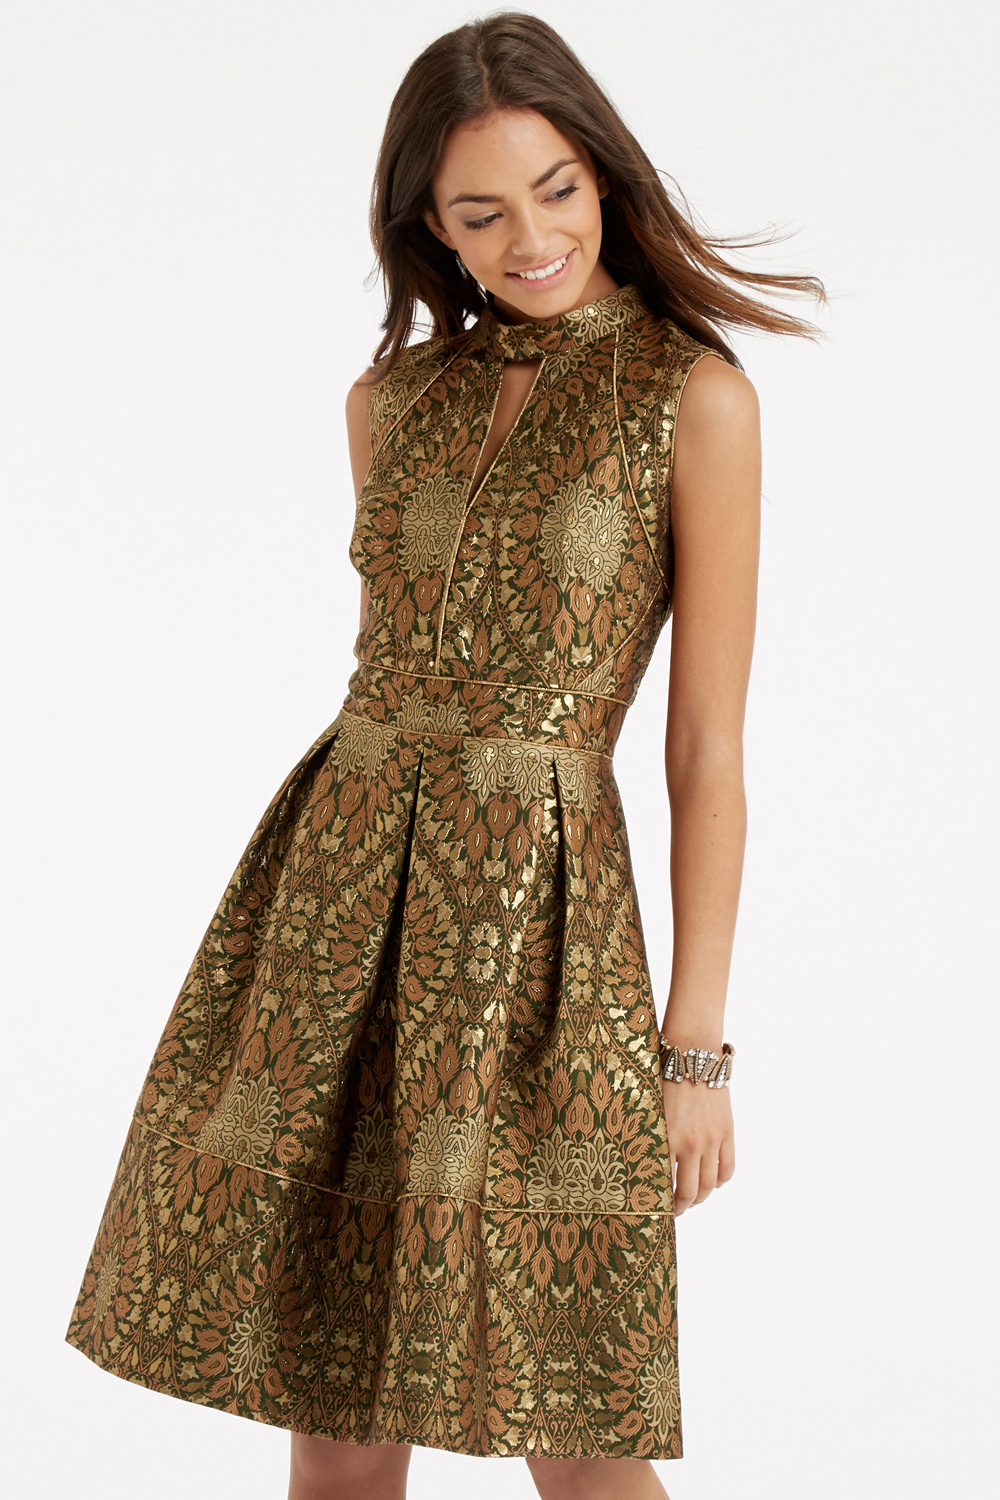 Beautiful Golden Color Evening Wear Gowns For Women  Outfit For Girls Womens